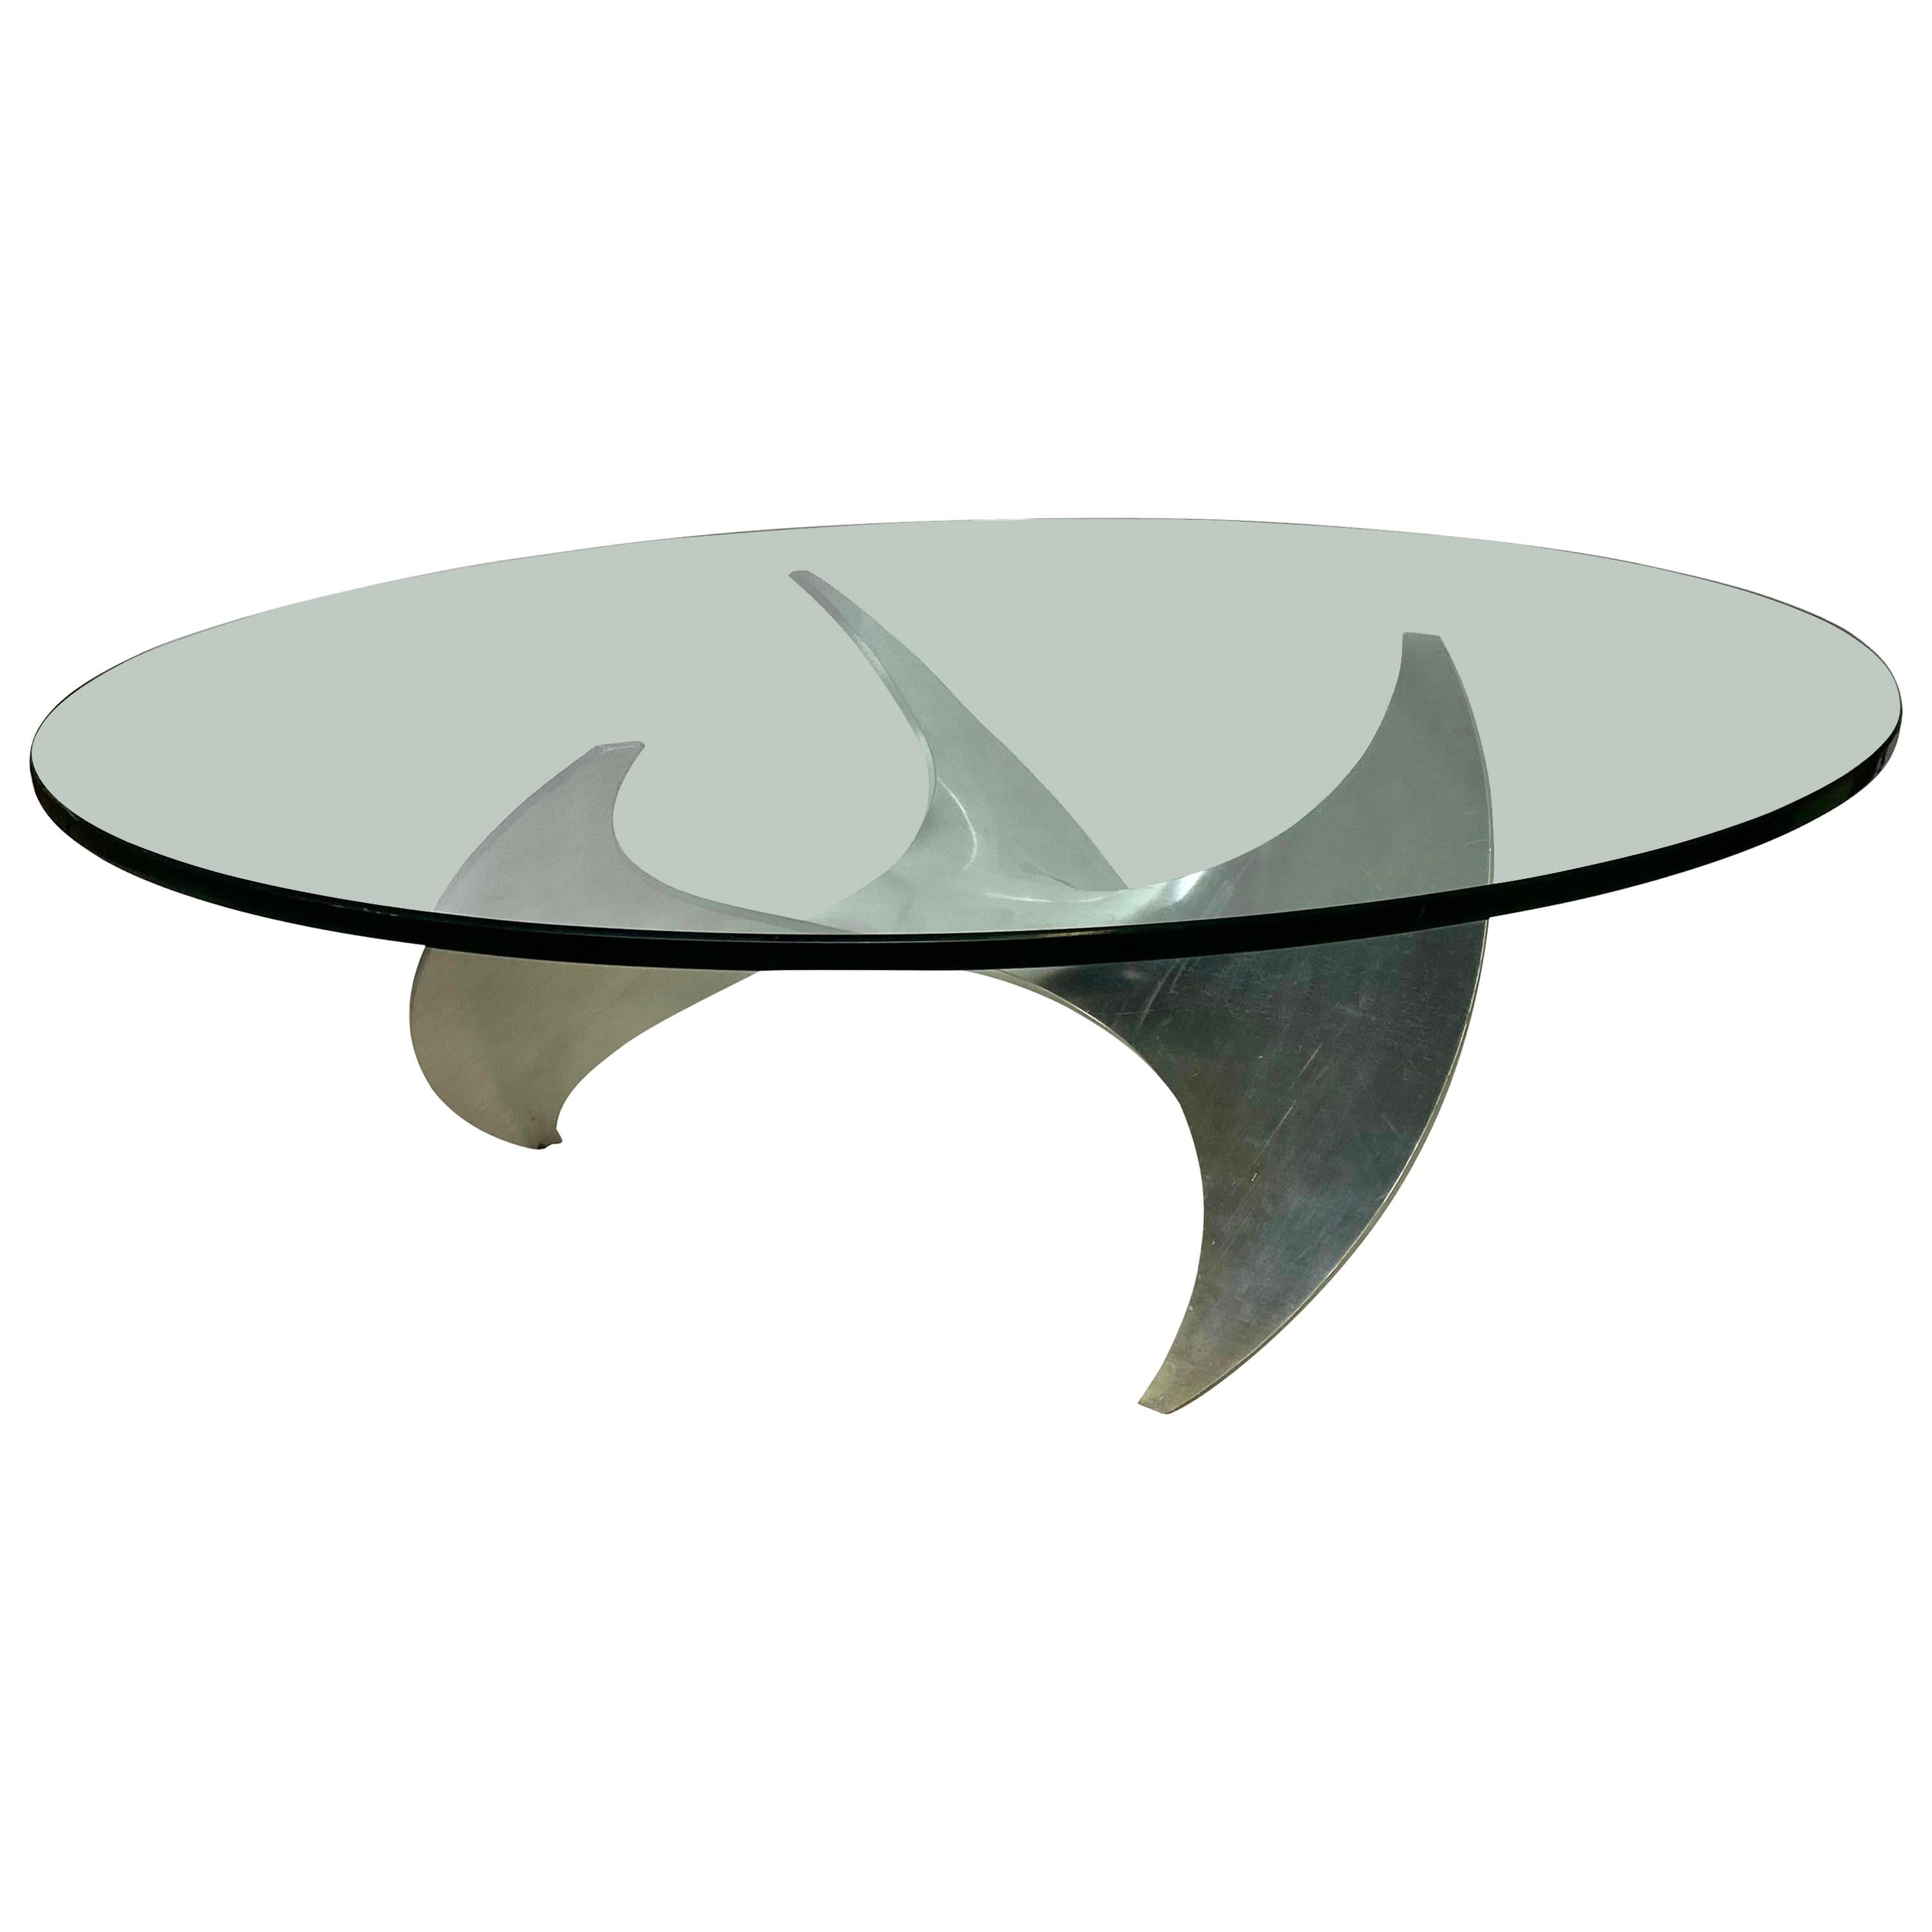 Midcentury Aluminum and Glass Propeller Table by Knut Hesterberg